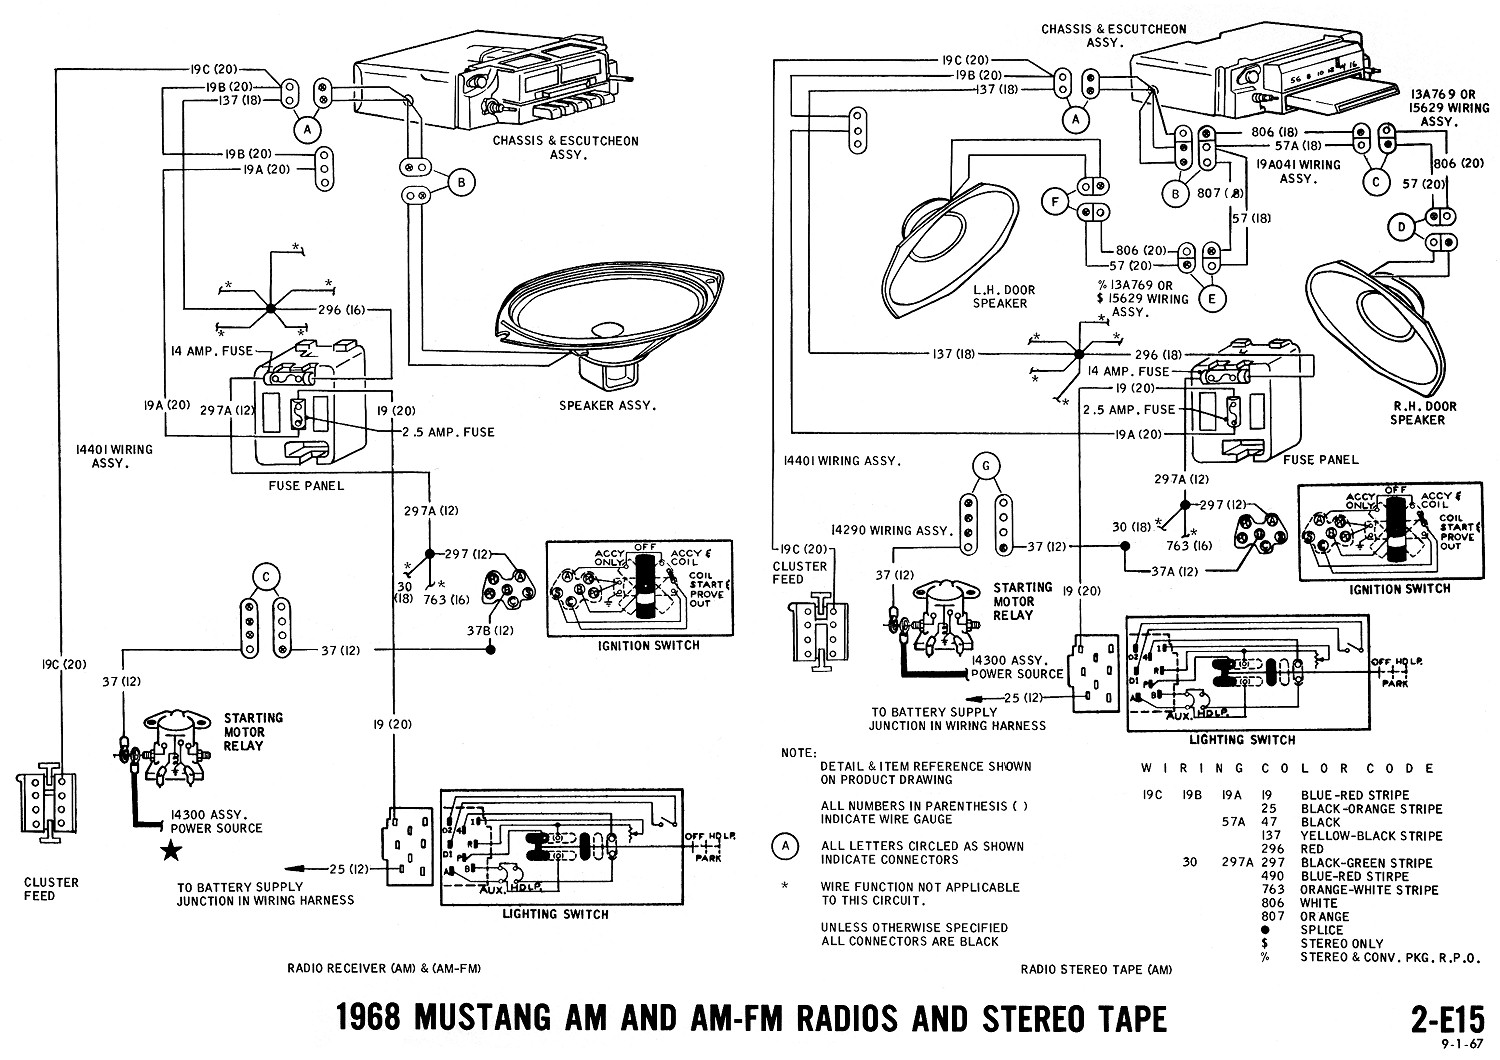 Porsche Speakers Wiring Diagram Will Be A Thing 1968 Mustang Diagrams Evolving Software 356 Schematics